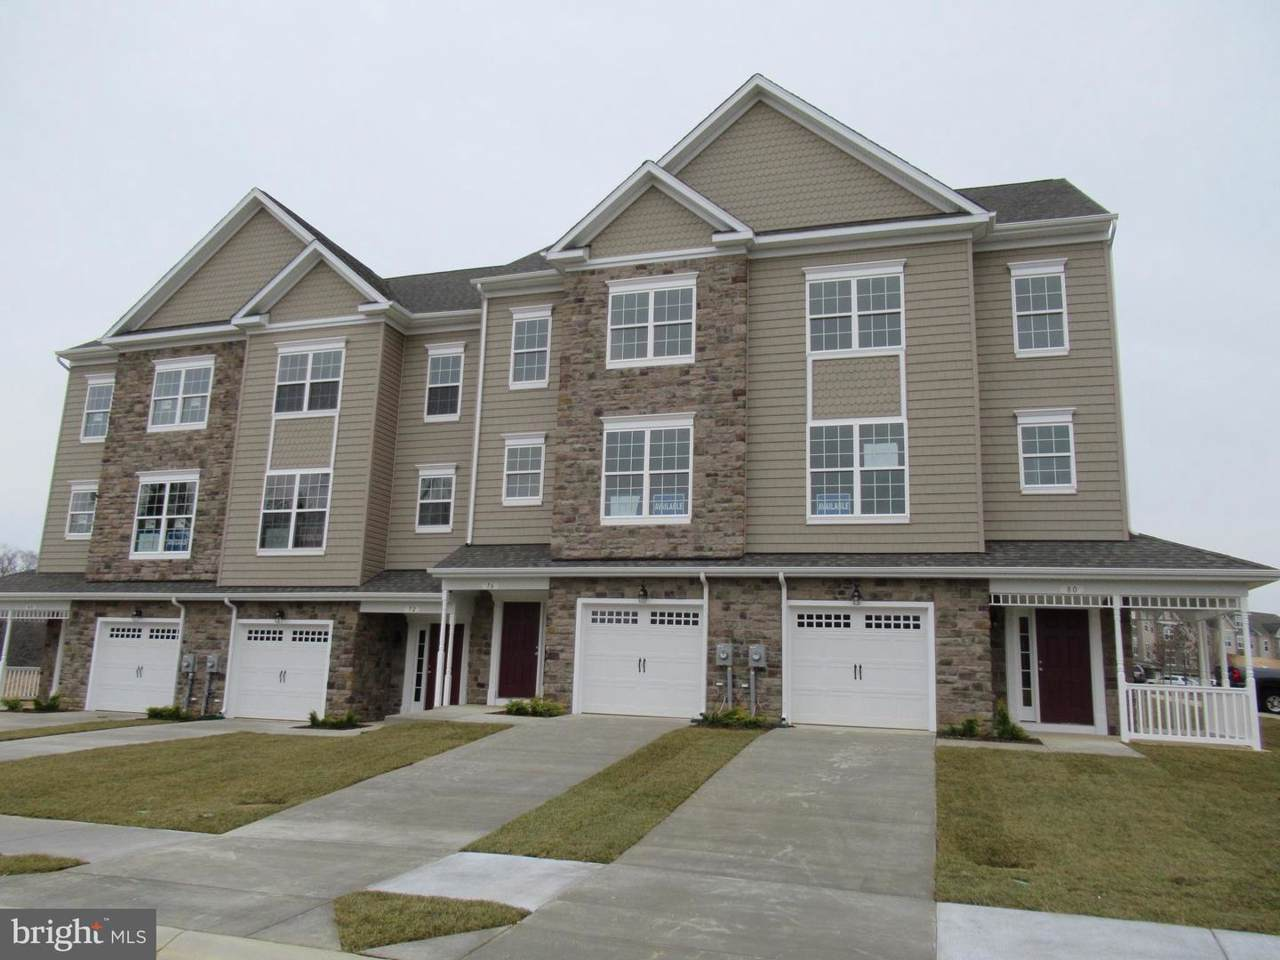 79 Clydesdale Lane - Photo 1